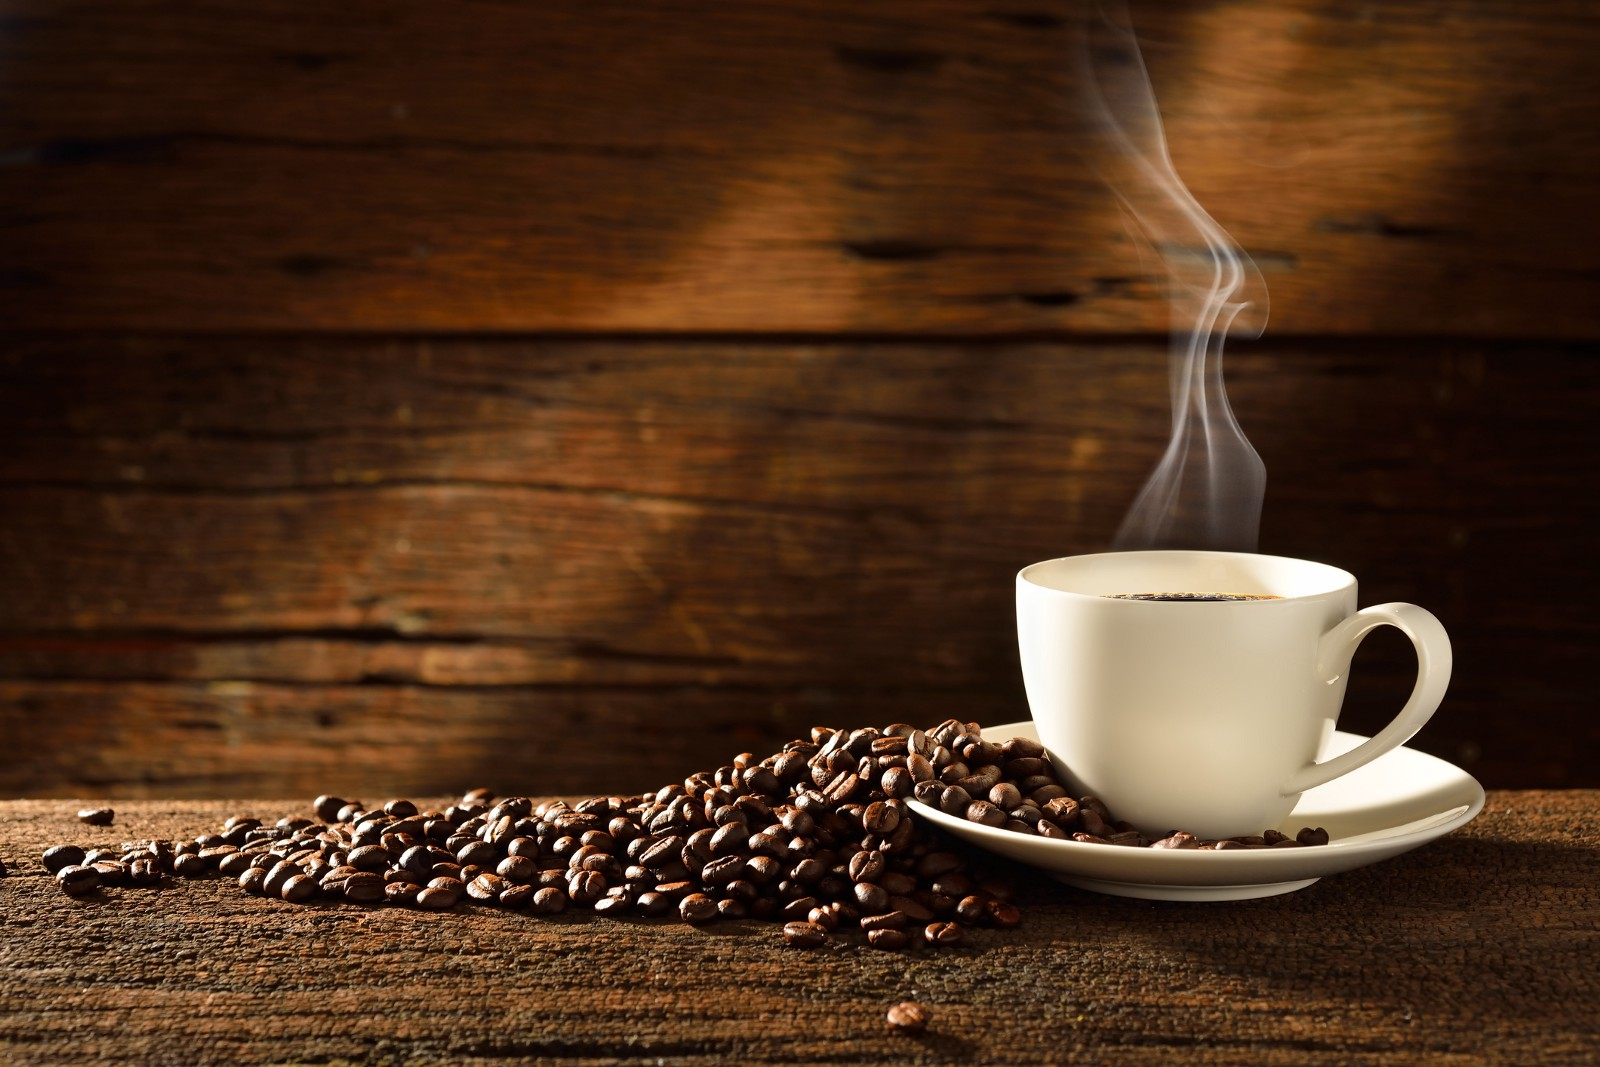 Colombia is the third largest exporter of coffee in the world.